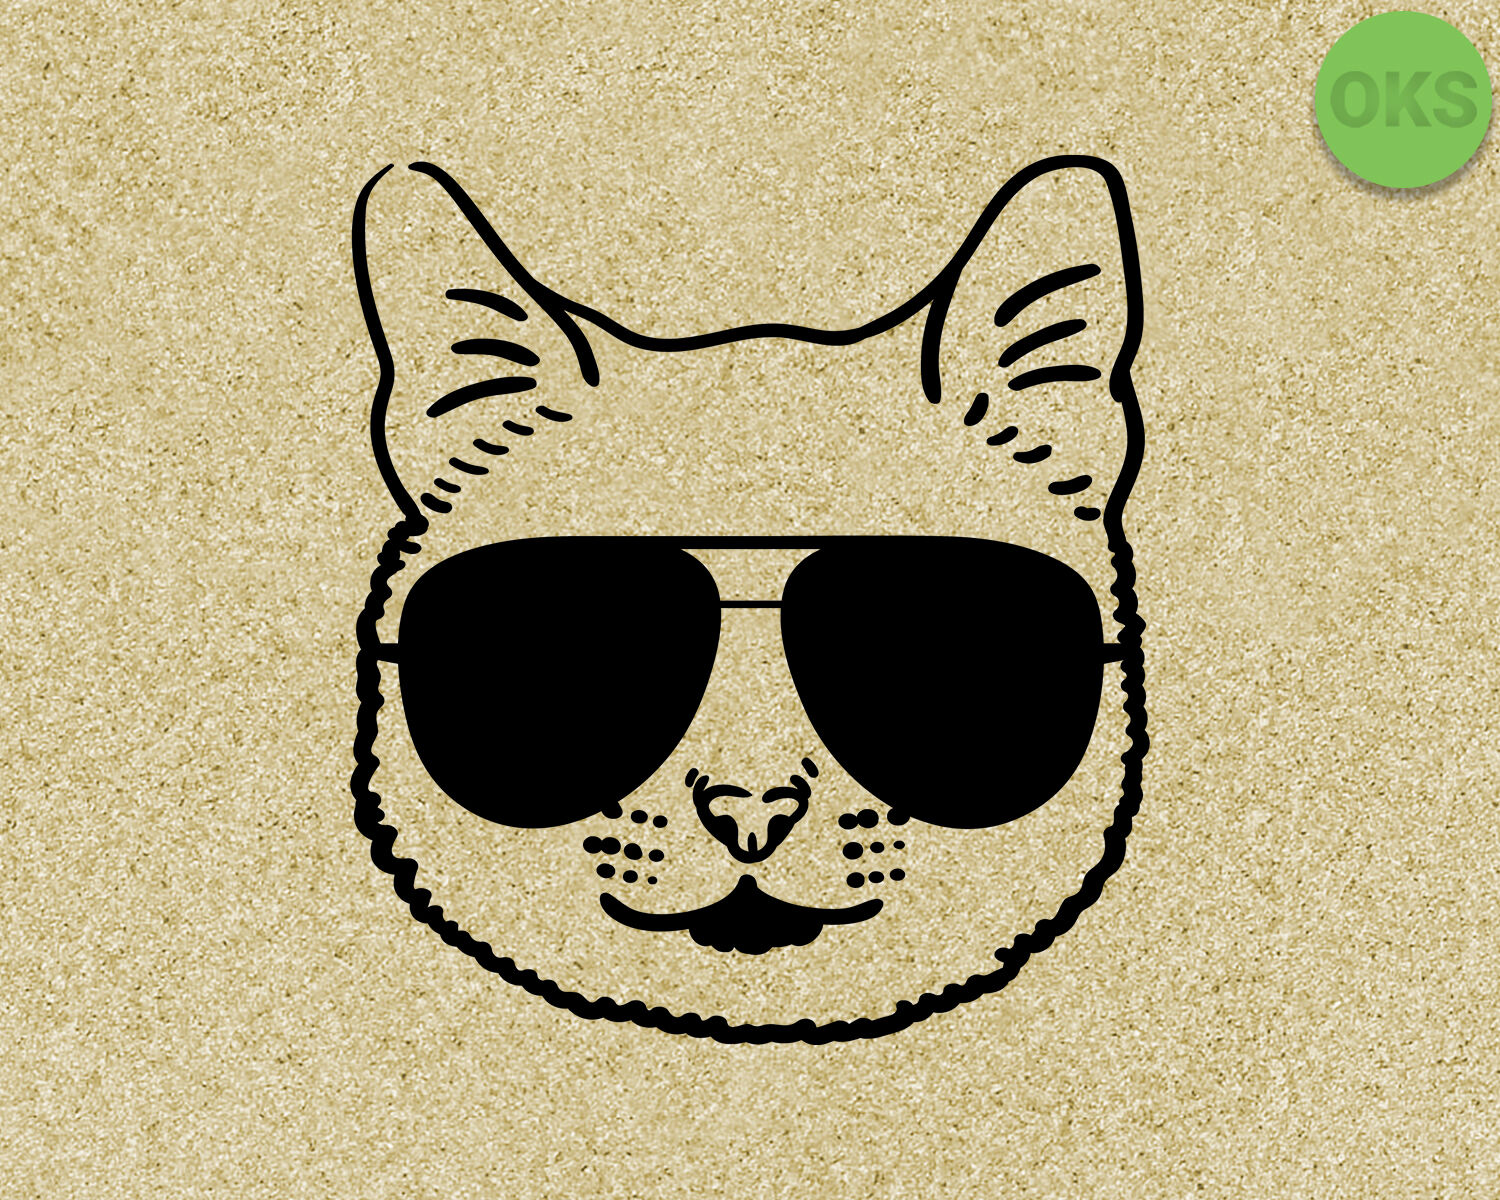 cat with sunglasses svg, dxf, vector, eps, clipart, cricut.